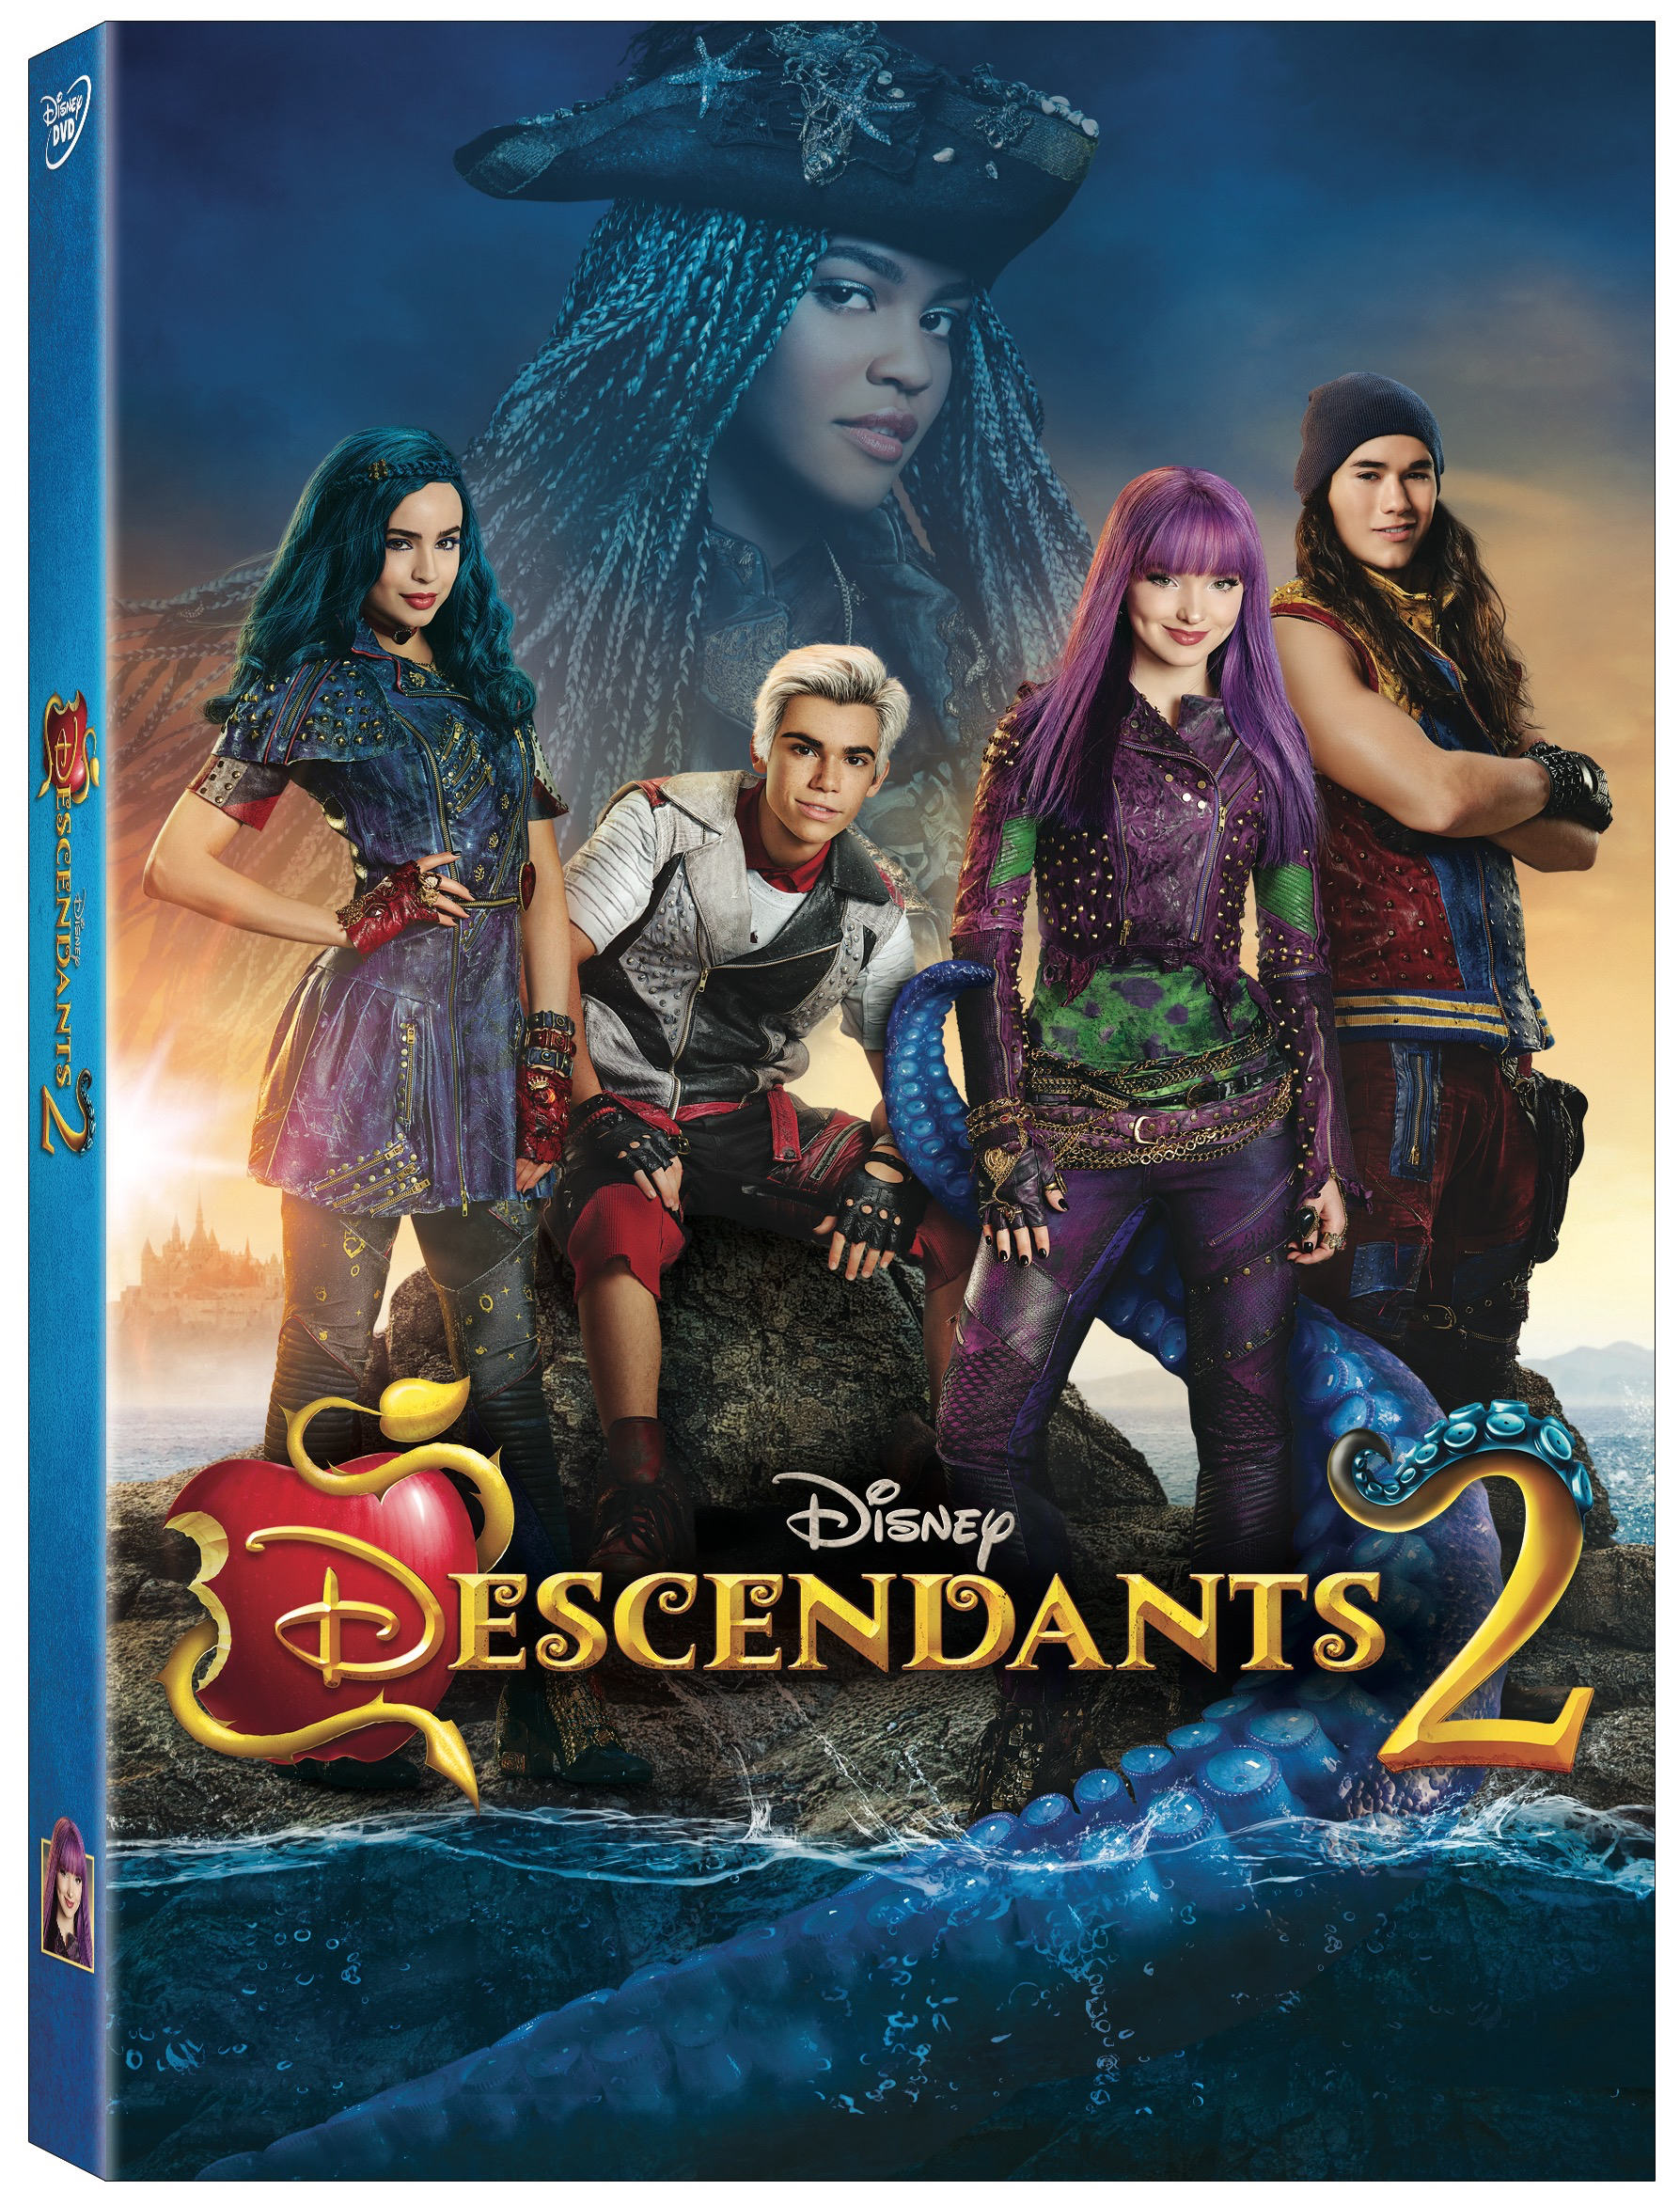 Disney Descendants 2 DVD Giveaway